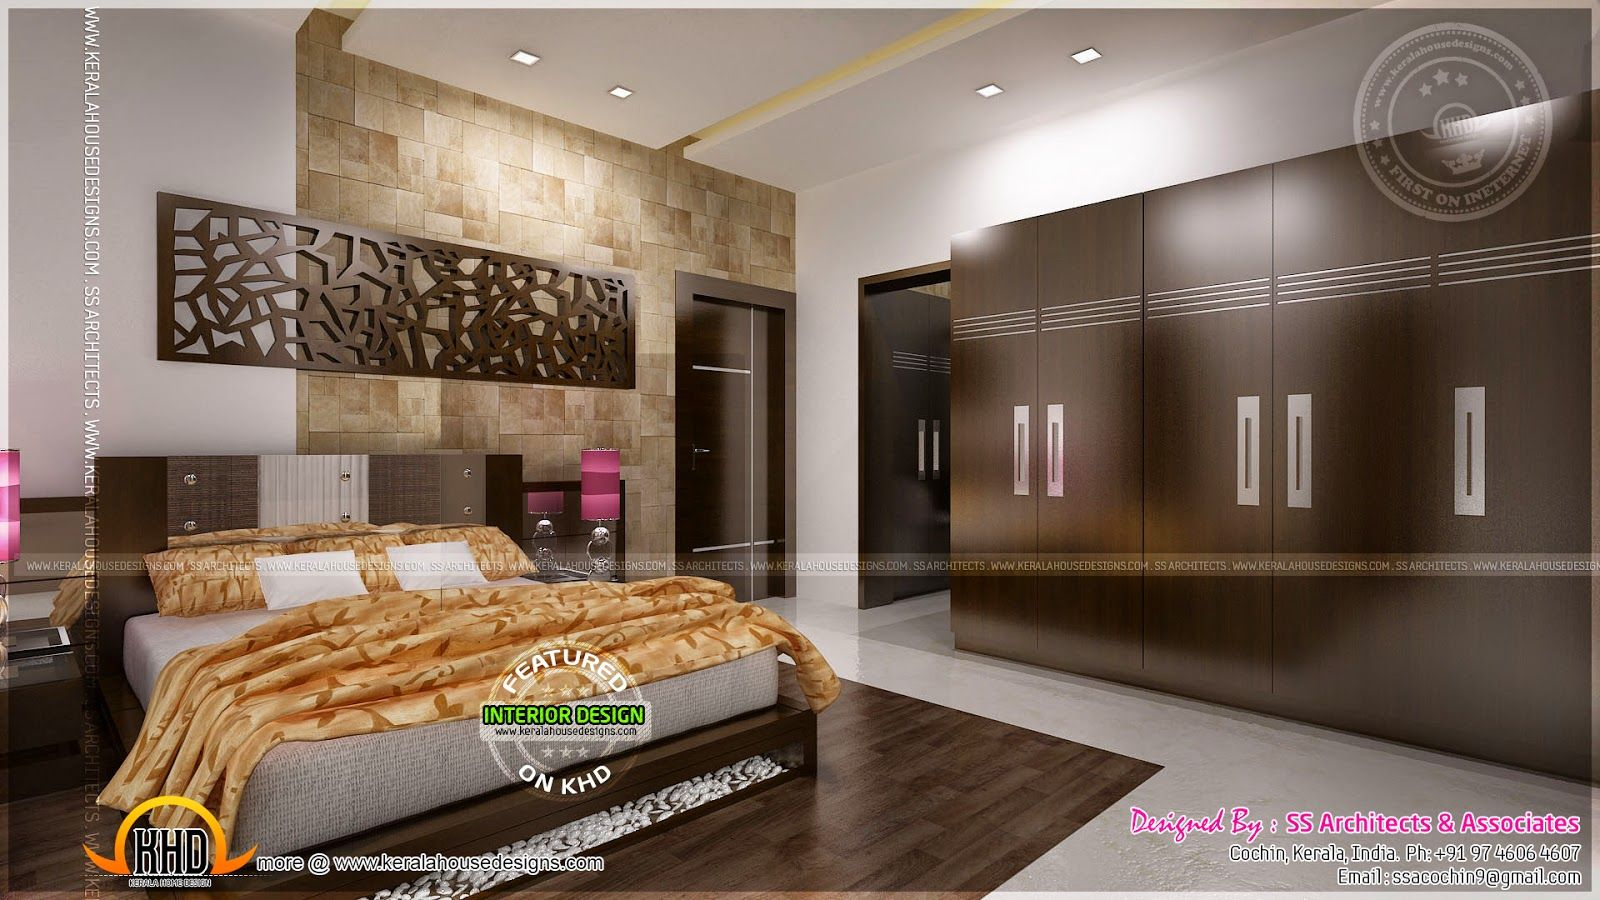 Master Bedroom Interior Decorating Bedroom Master Bedrooms Interior Decor Kerala Hom In 2020 Master Bedroom Interior Design Master Bedroom Layout Master Bedroom Design